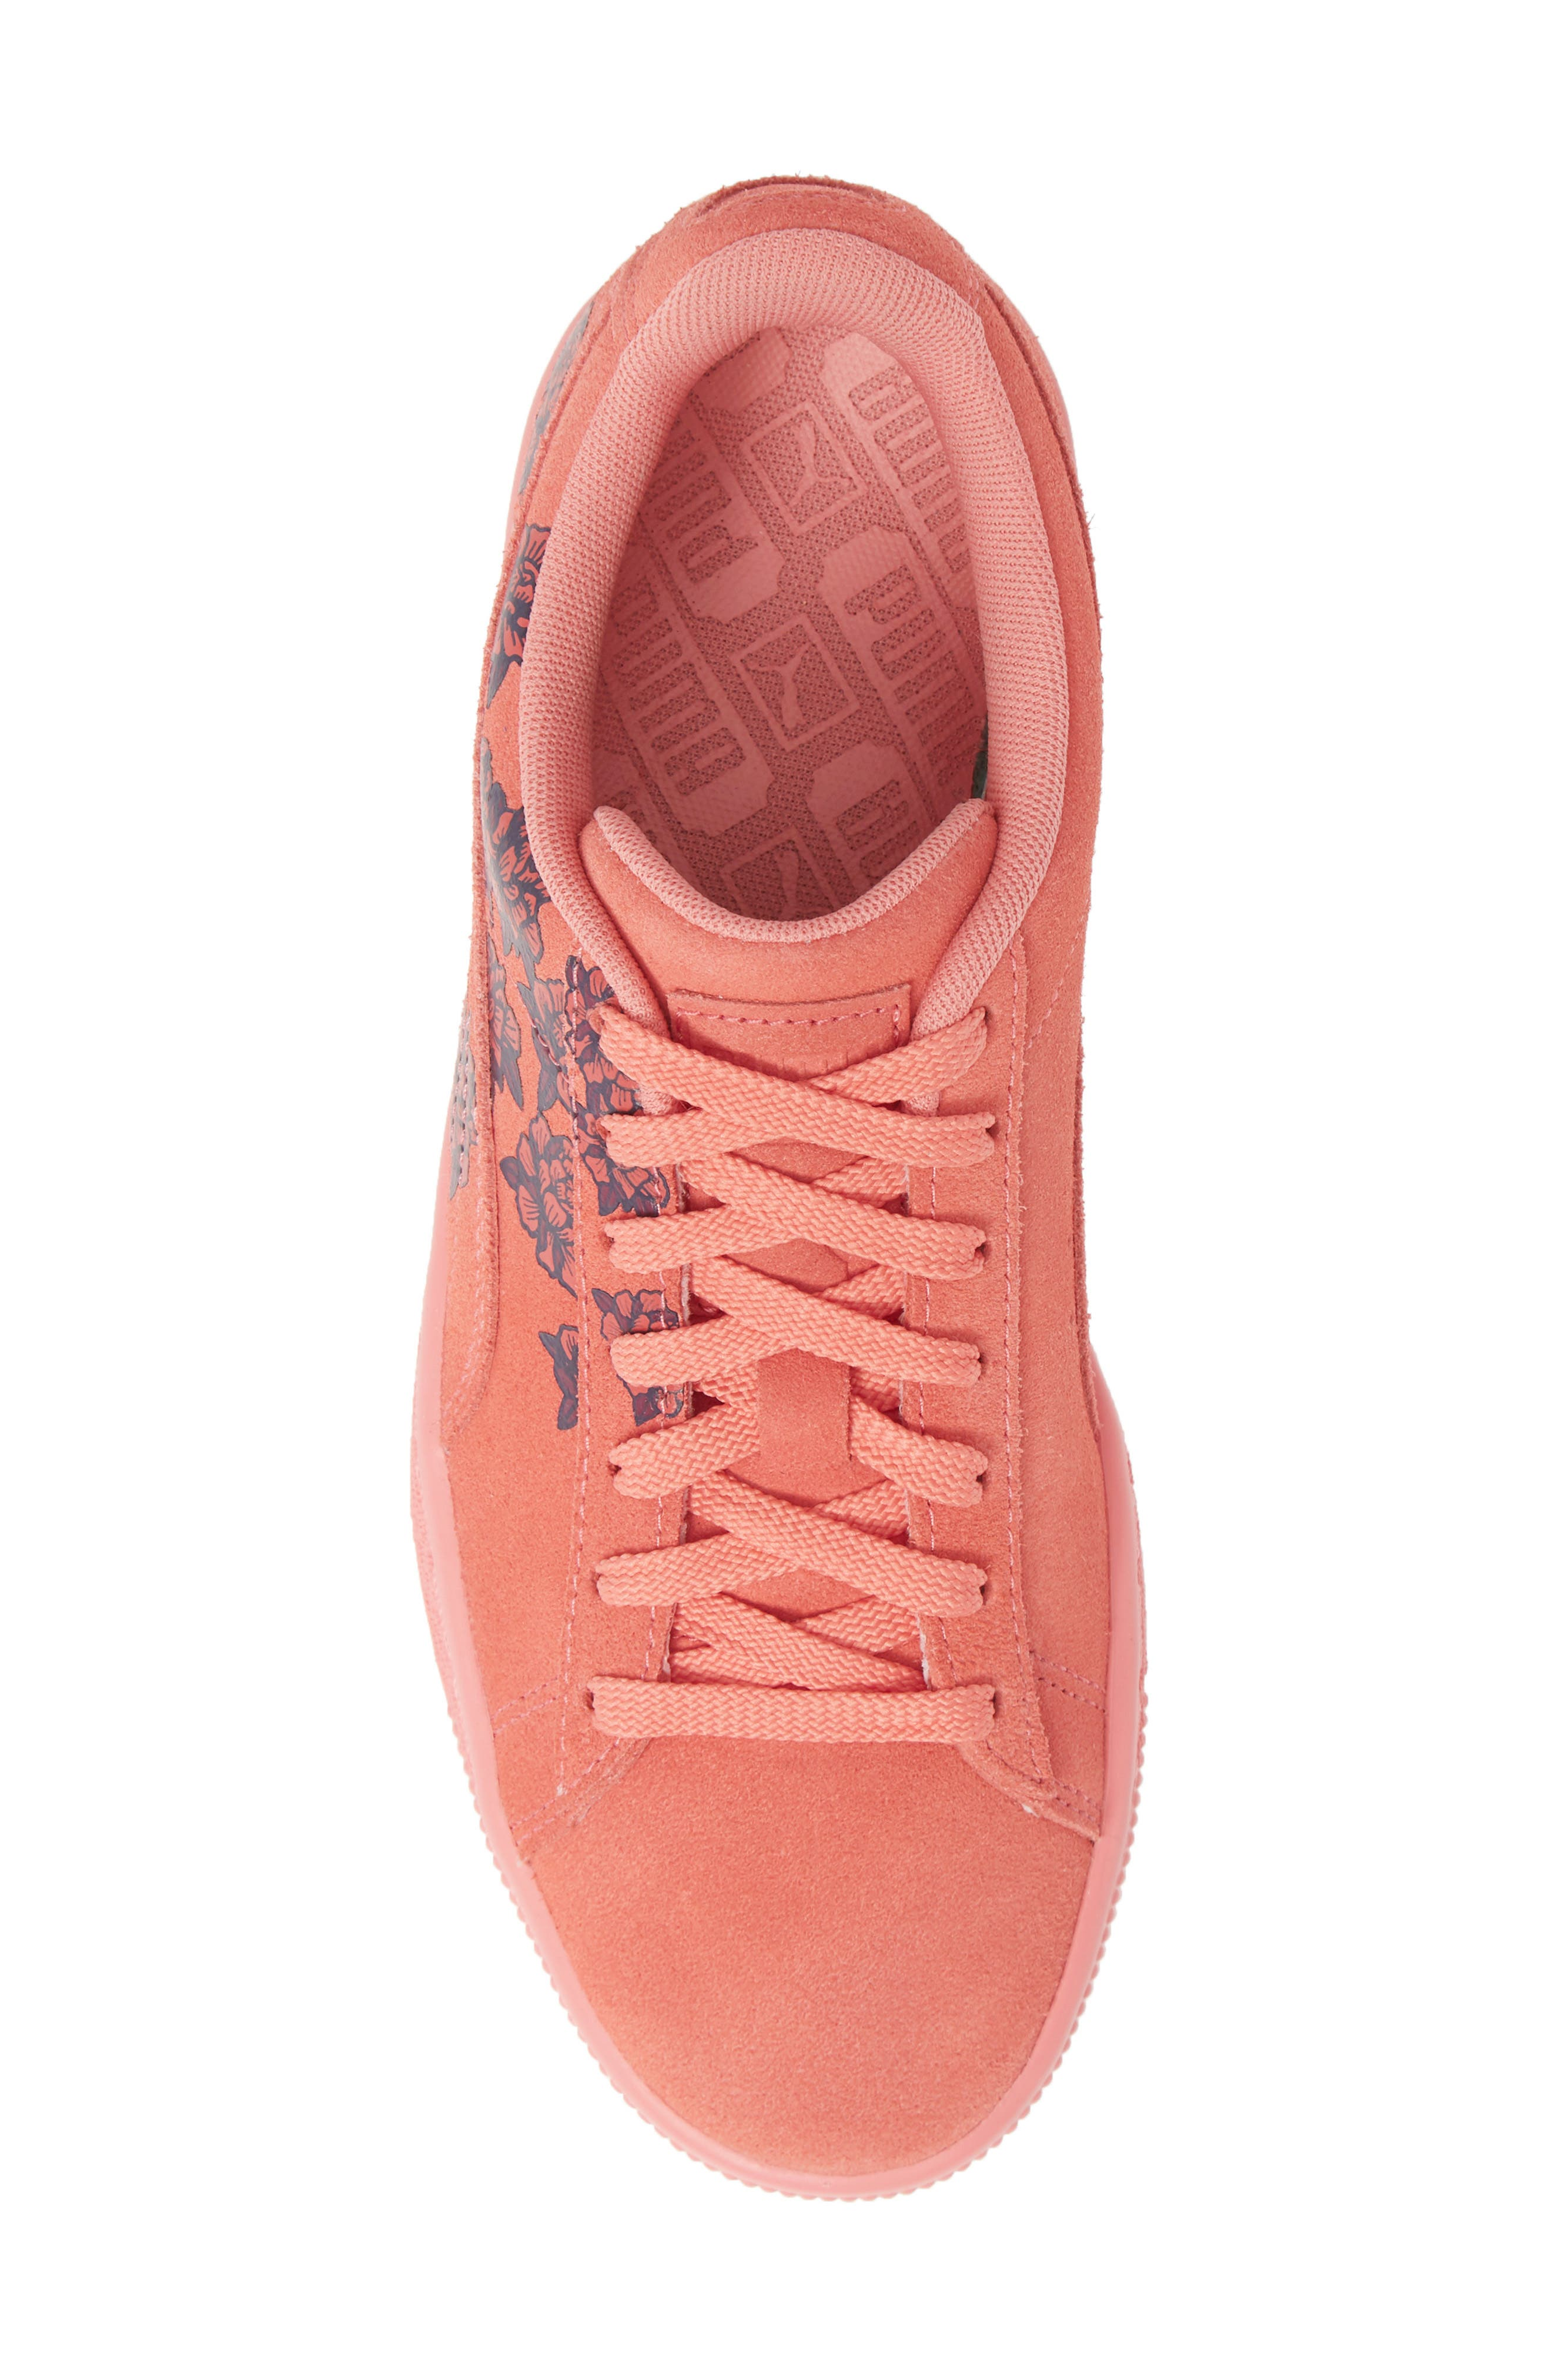 PUMA, Suede TOL Graphic Sneaker, Alternate thumbnail 5, color, SHELL PINK